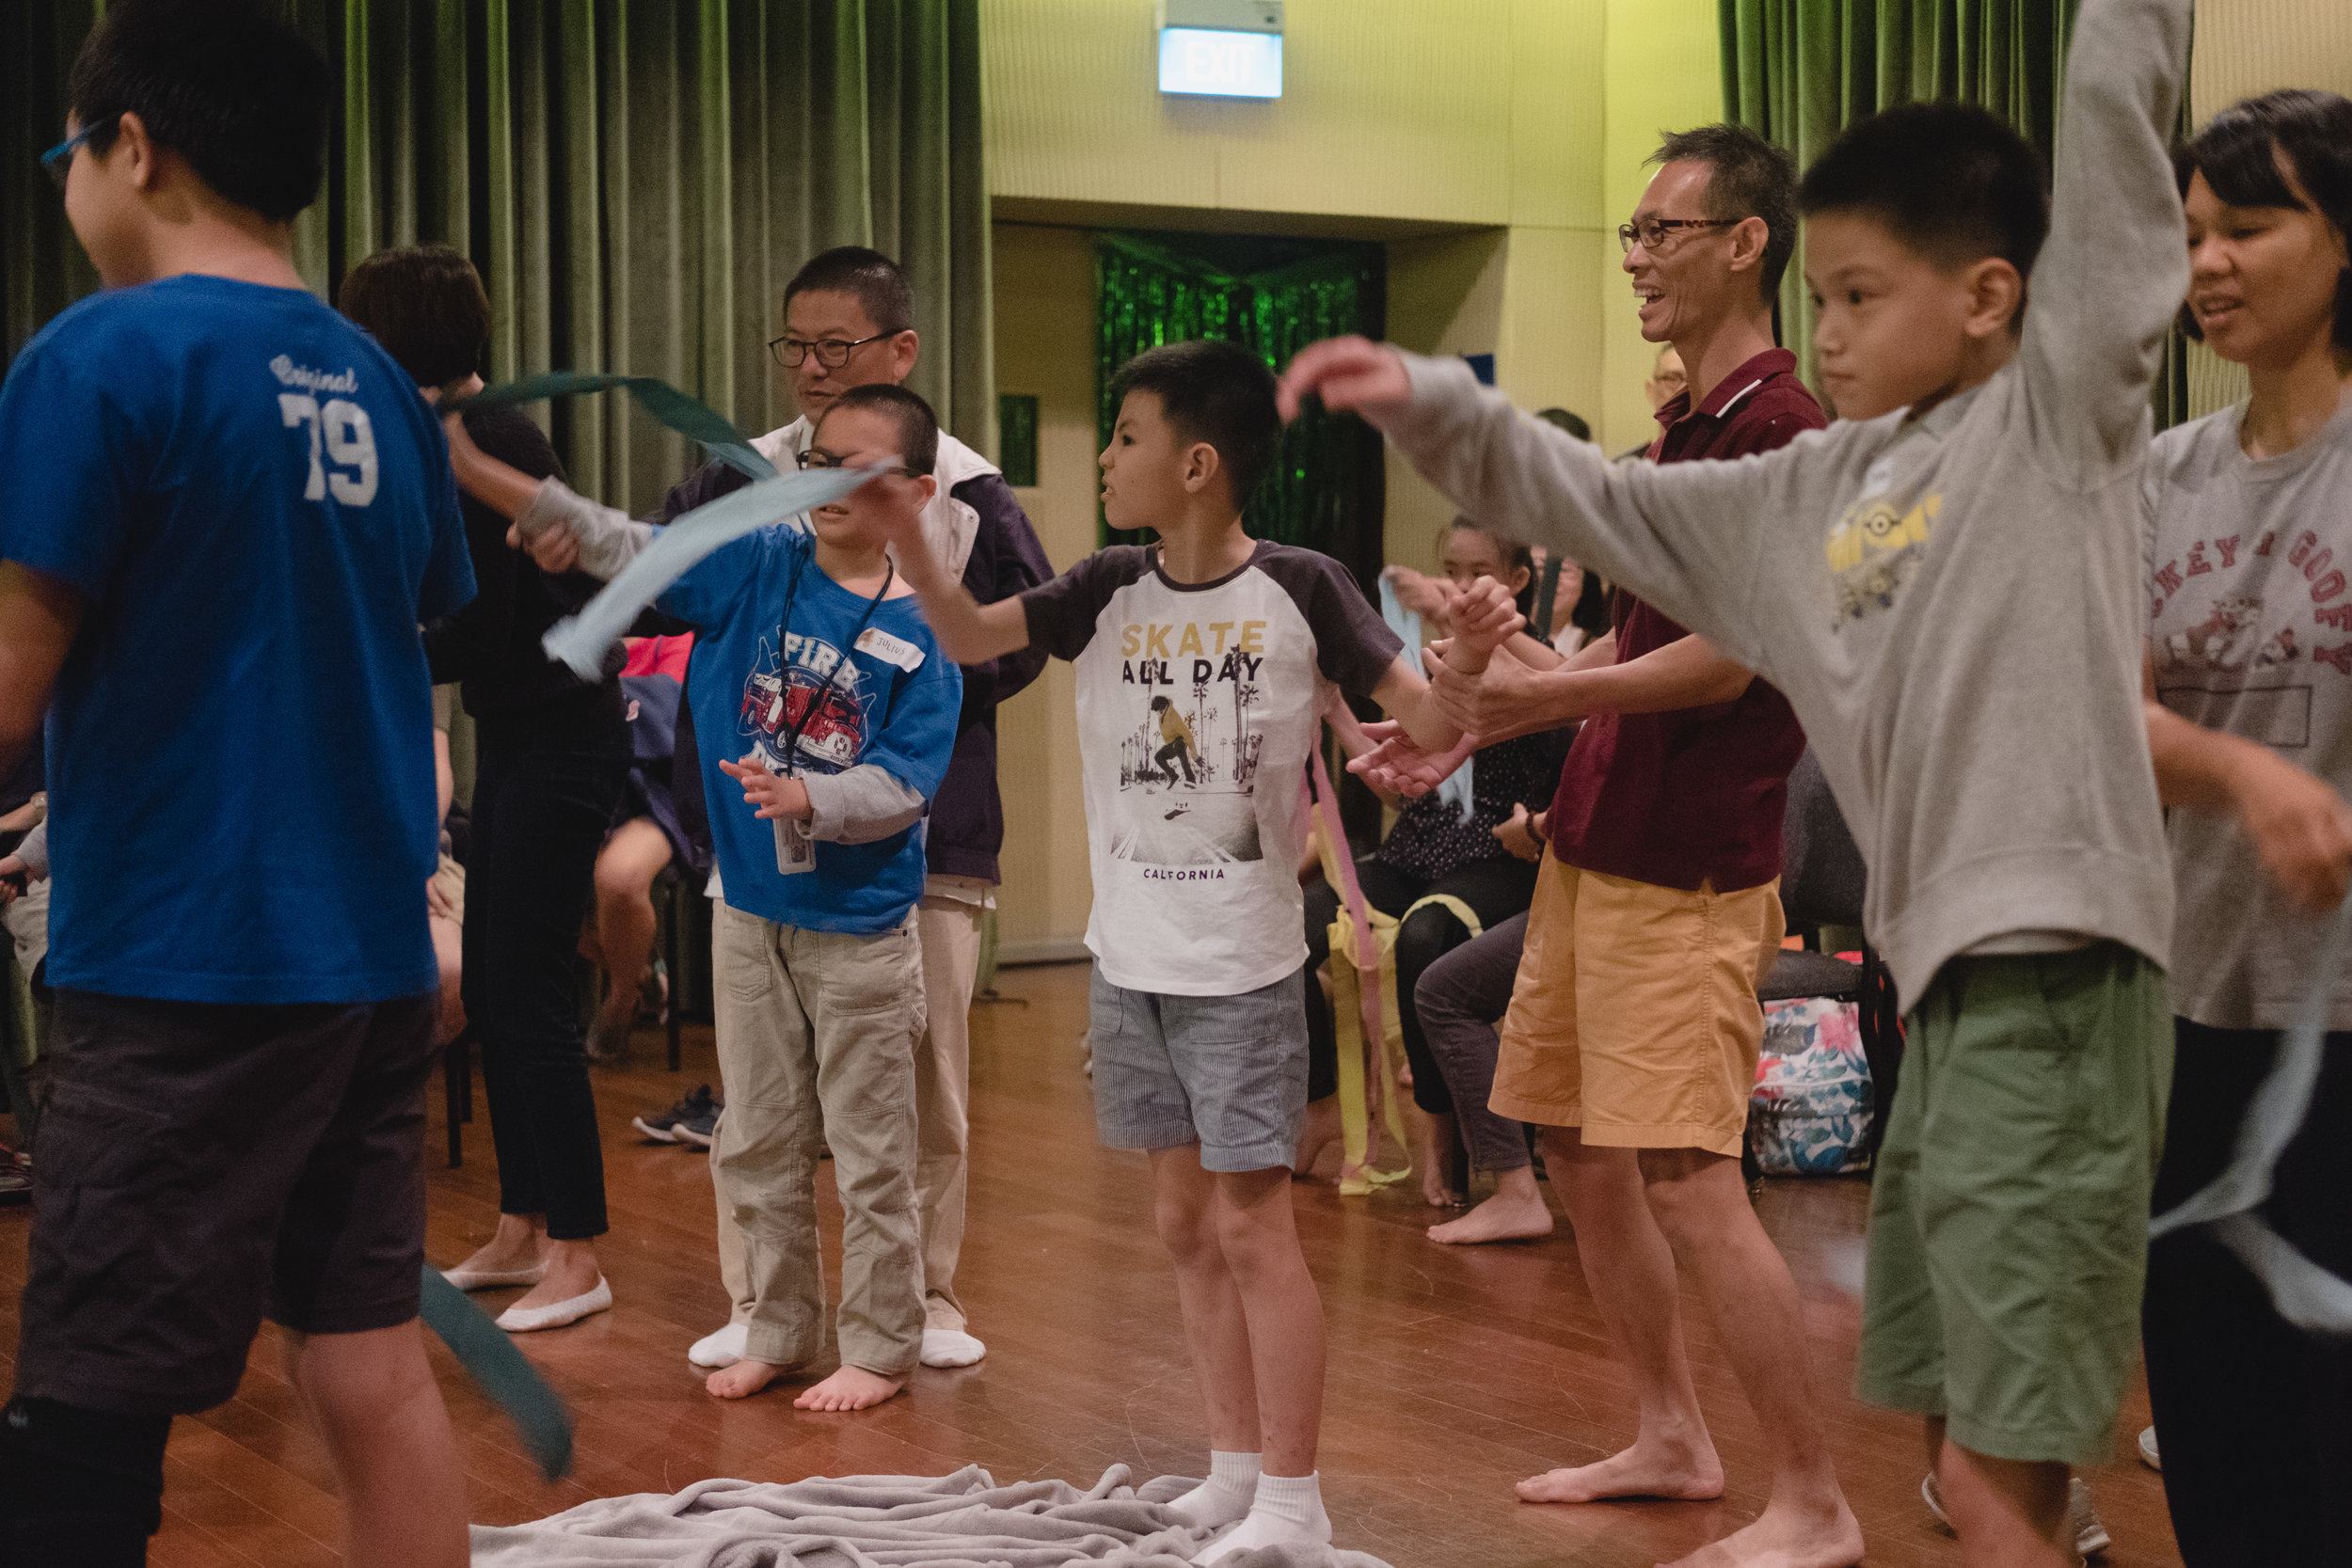 From individual and group interactions to kinaesthetic, visual and tactile activities, the team created a multi-sensory, safe and inclusive space for participants and families to freely enjoy music.